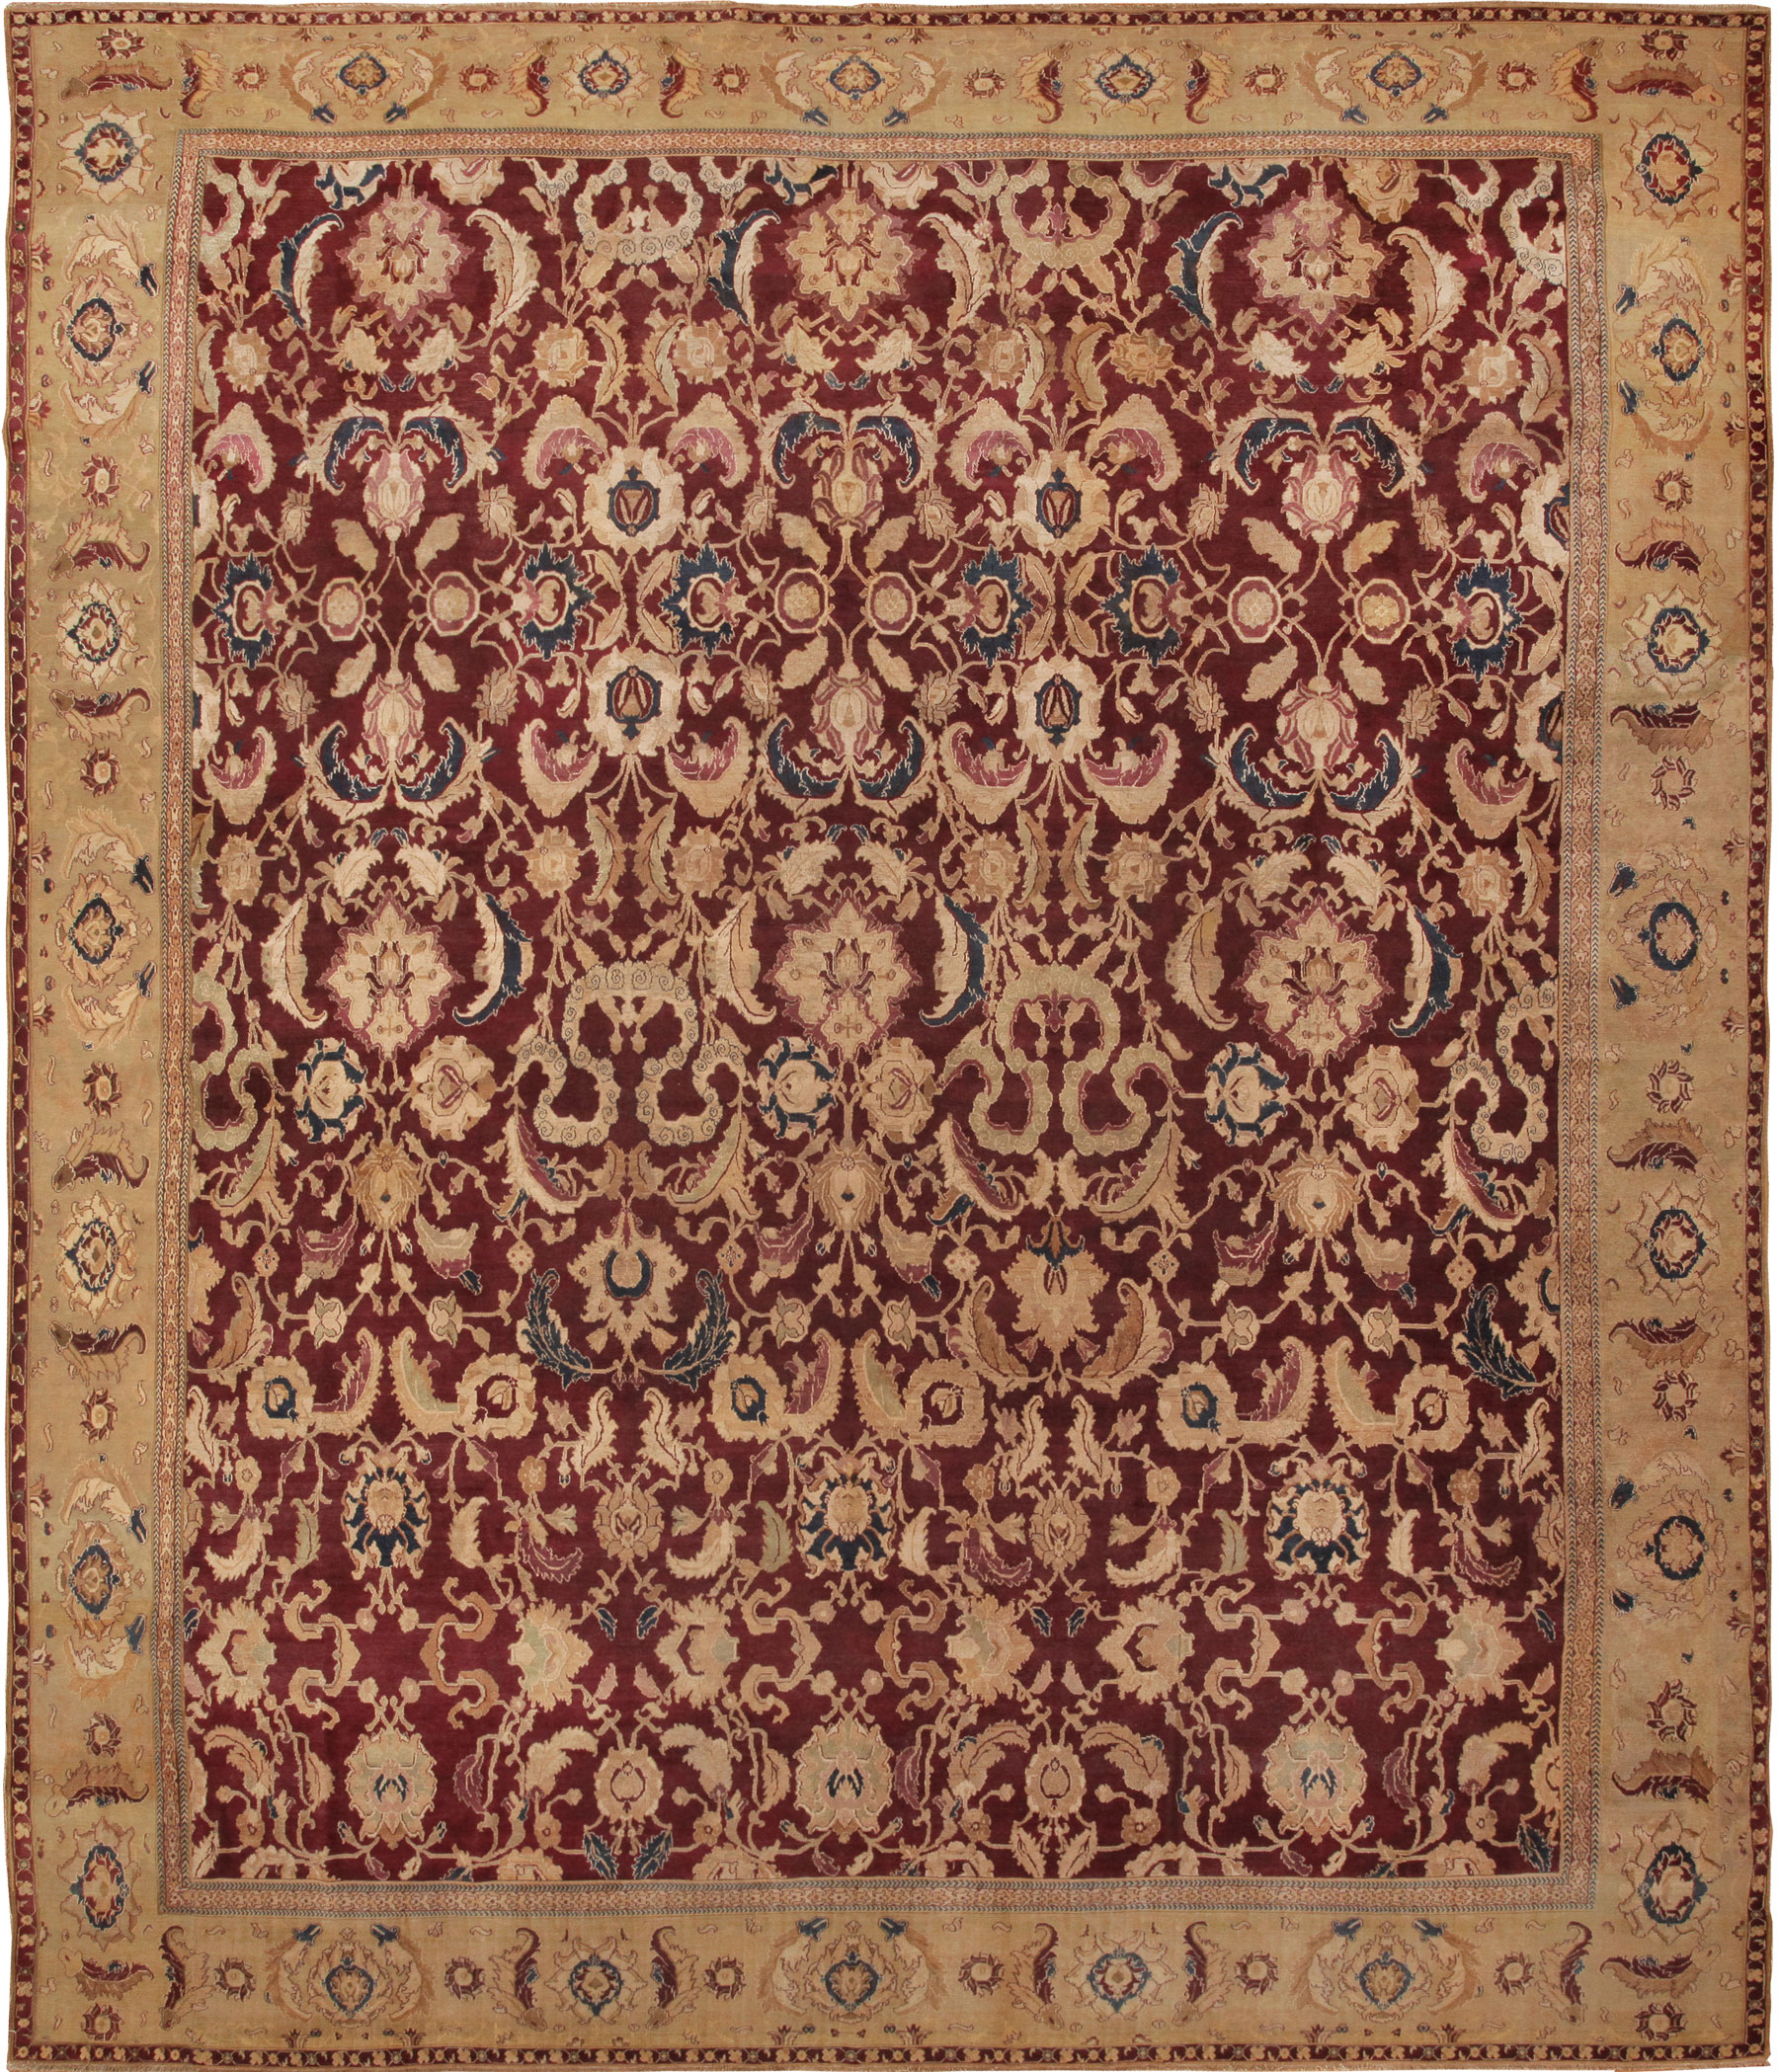 Arts And Crafts Rugs With Exciting Indian Agra Rug Design: Antique Agra Oriental Rugs 44604 For Sale